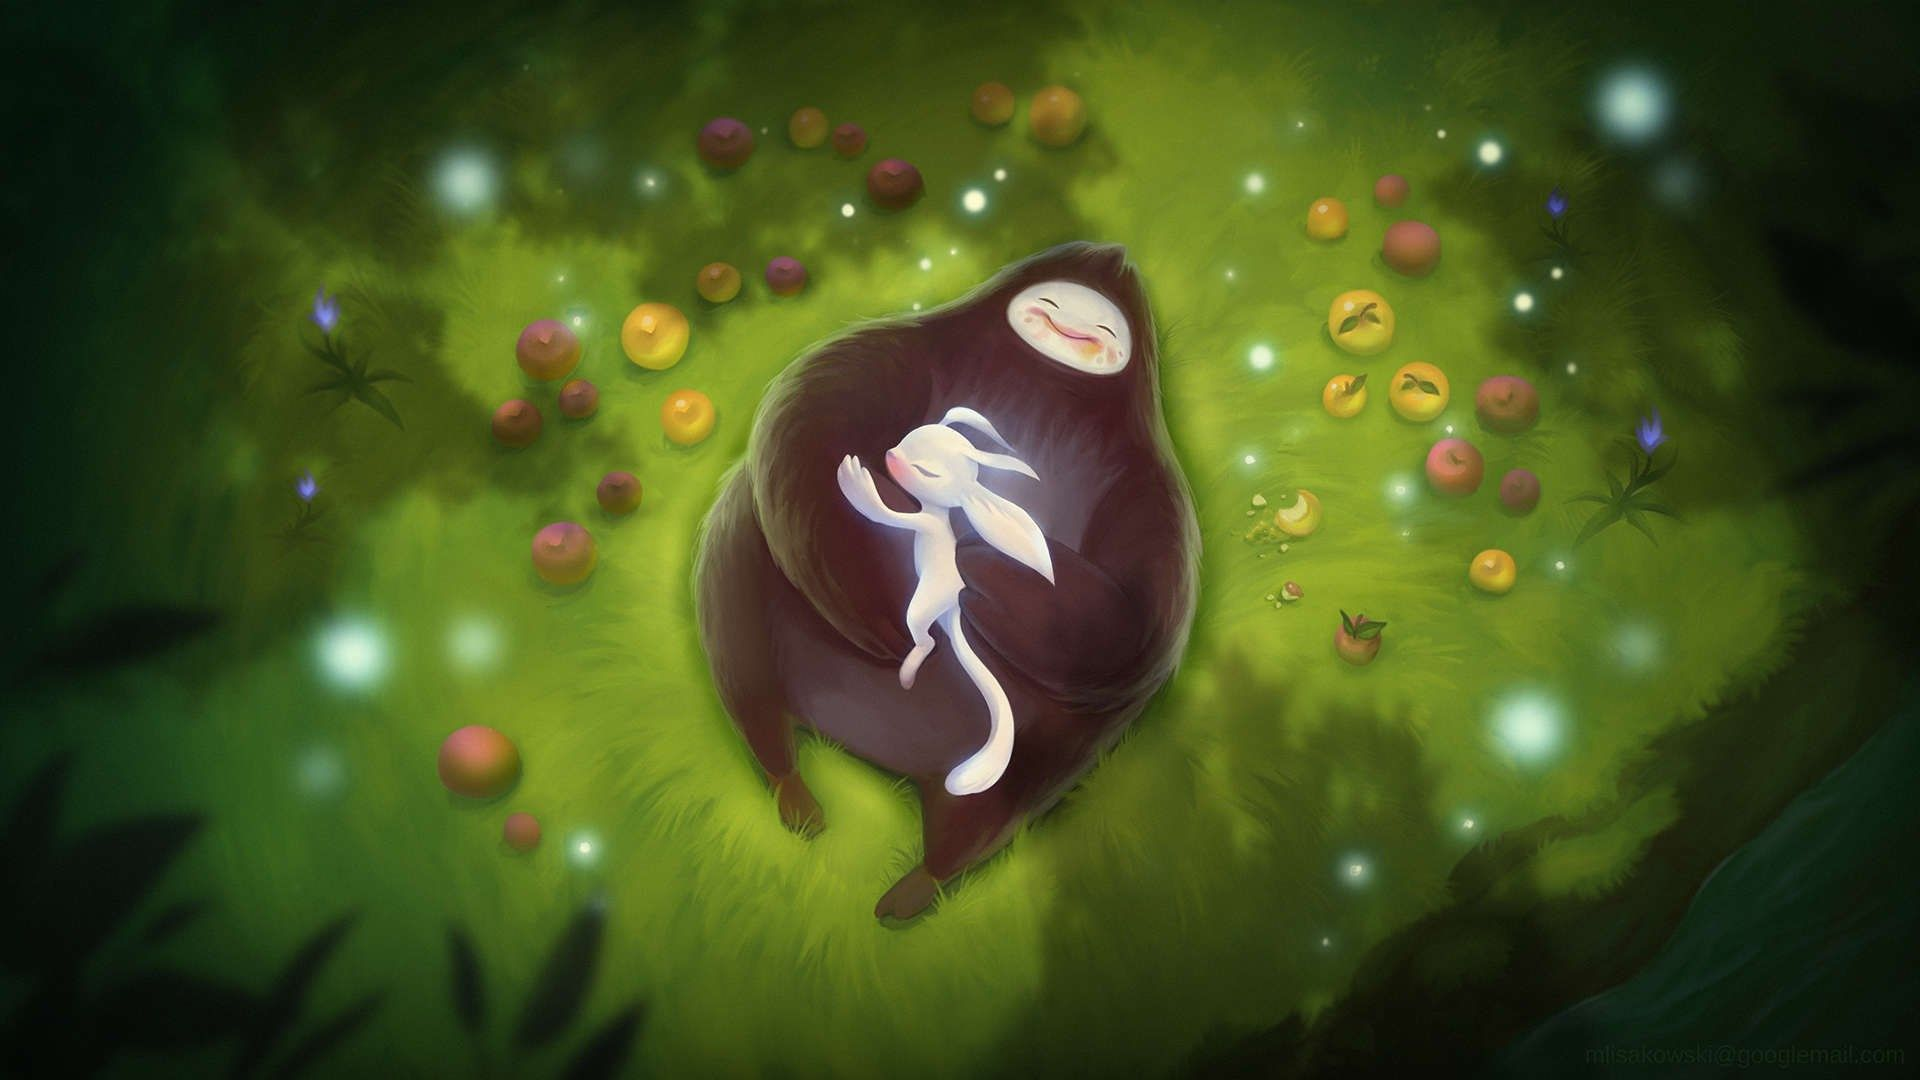 gorgeous ori and the blind forest wallpaper | d licious | pinterest